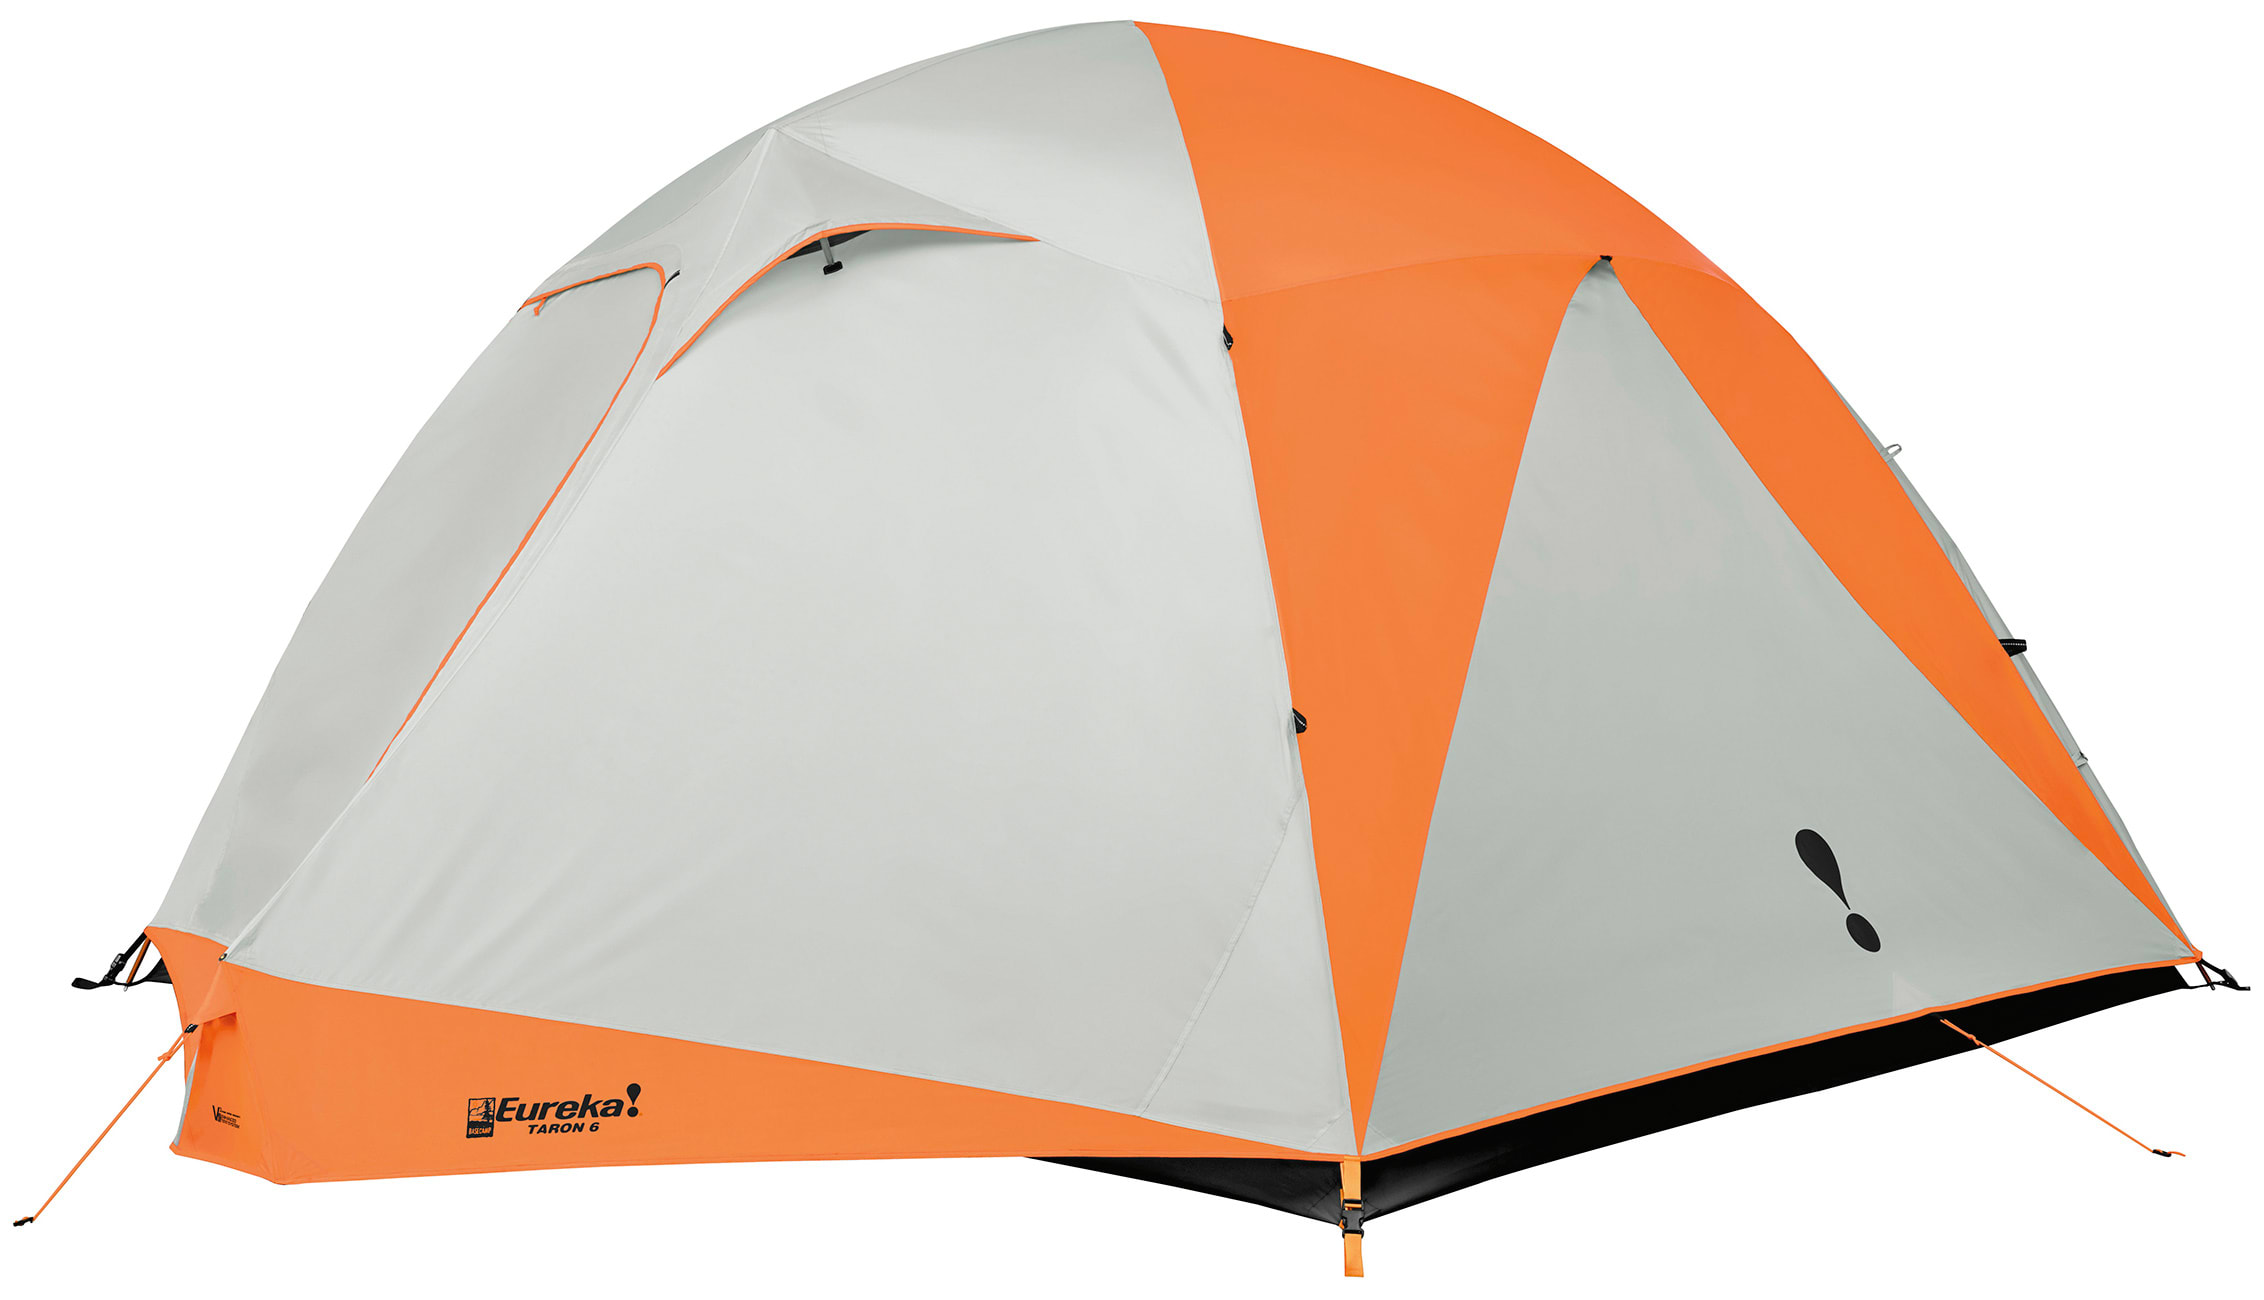 Eureka Taron Basec& 6 Tent - thumbnail 1  sc 1 st  The House & On Sale Eureka Taron Basecamp 6 Tent up to 55% off